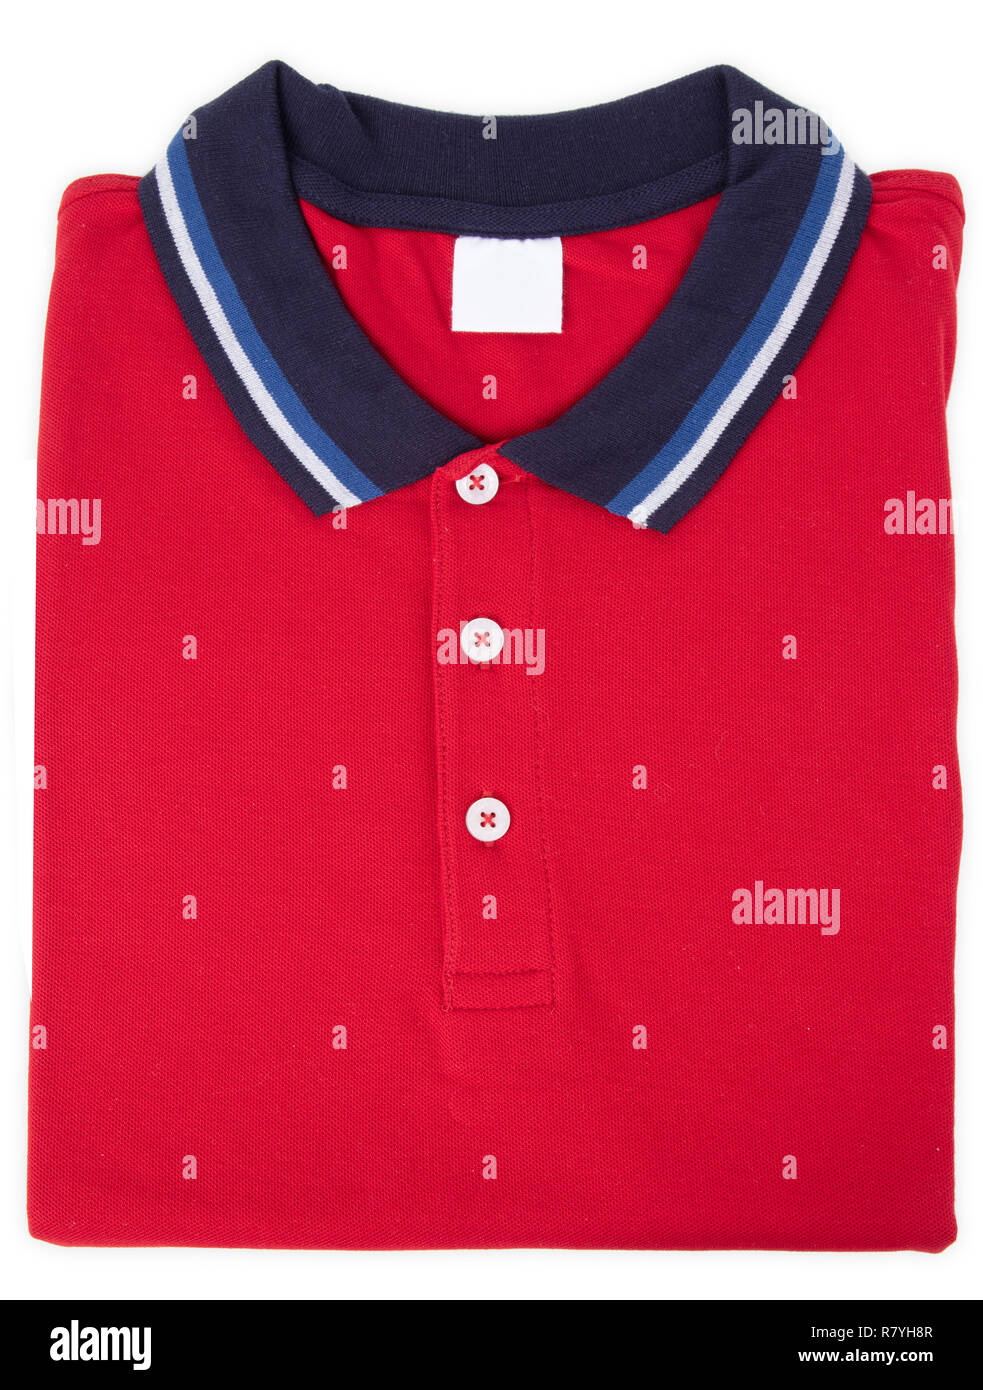 9f1f1347e6 Blue Polo Shirt With Red And White Stripes - DREAMWORKS